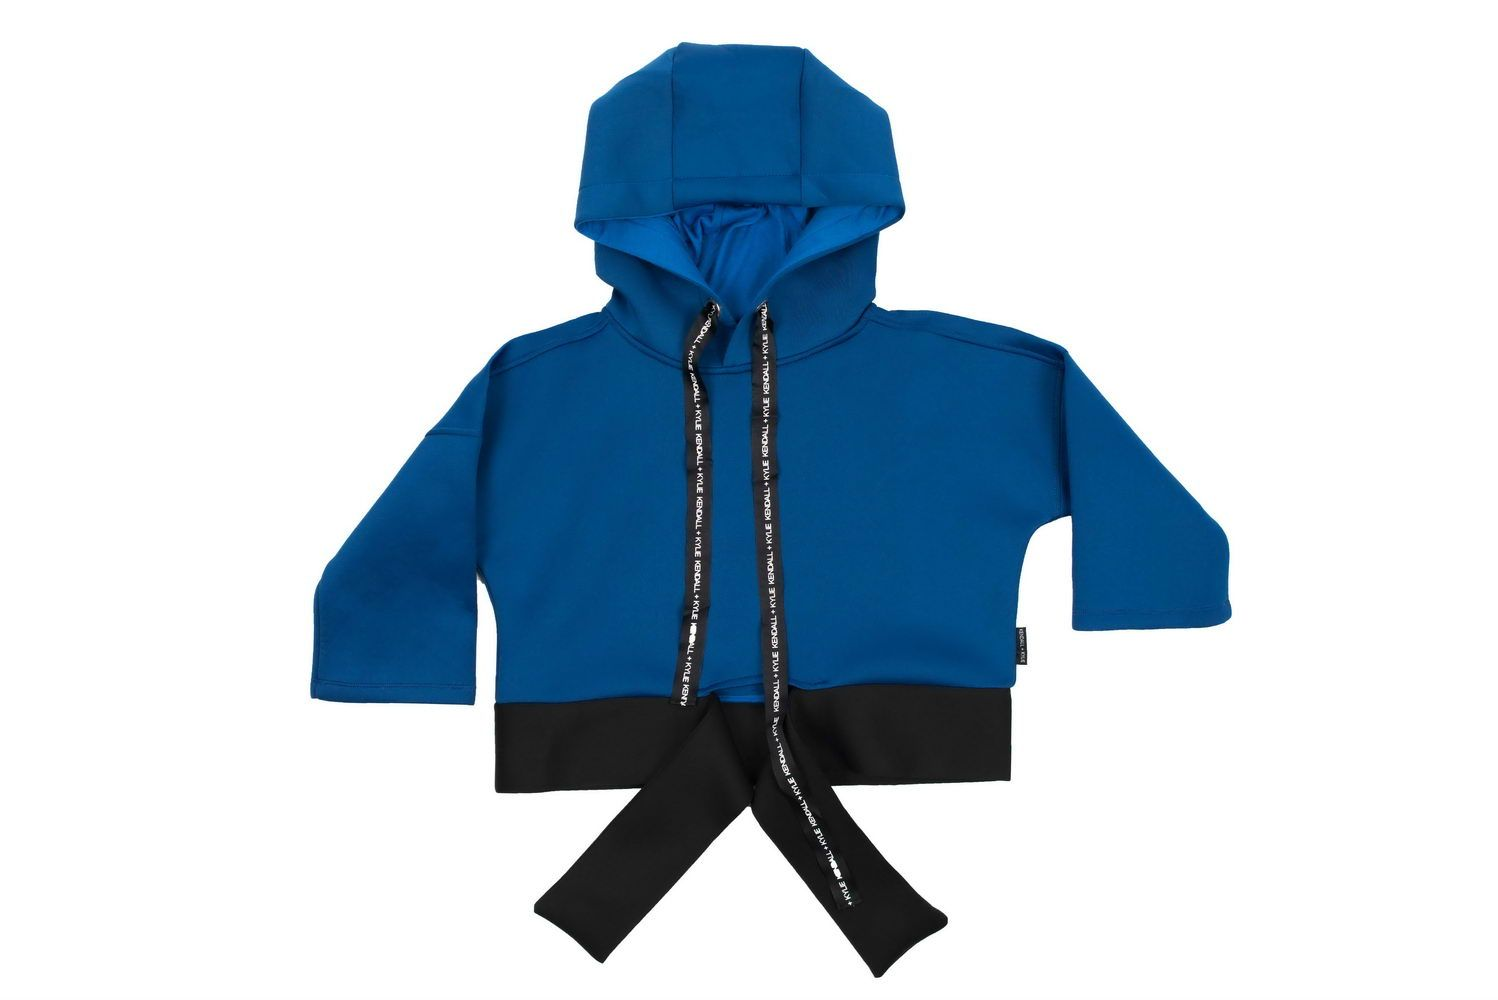 K+K fleece kimoni (6661) - PVP 34,95__resize